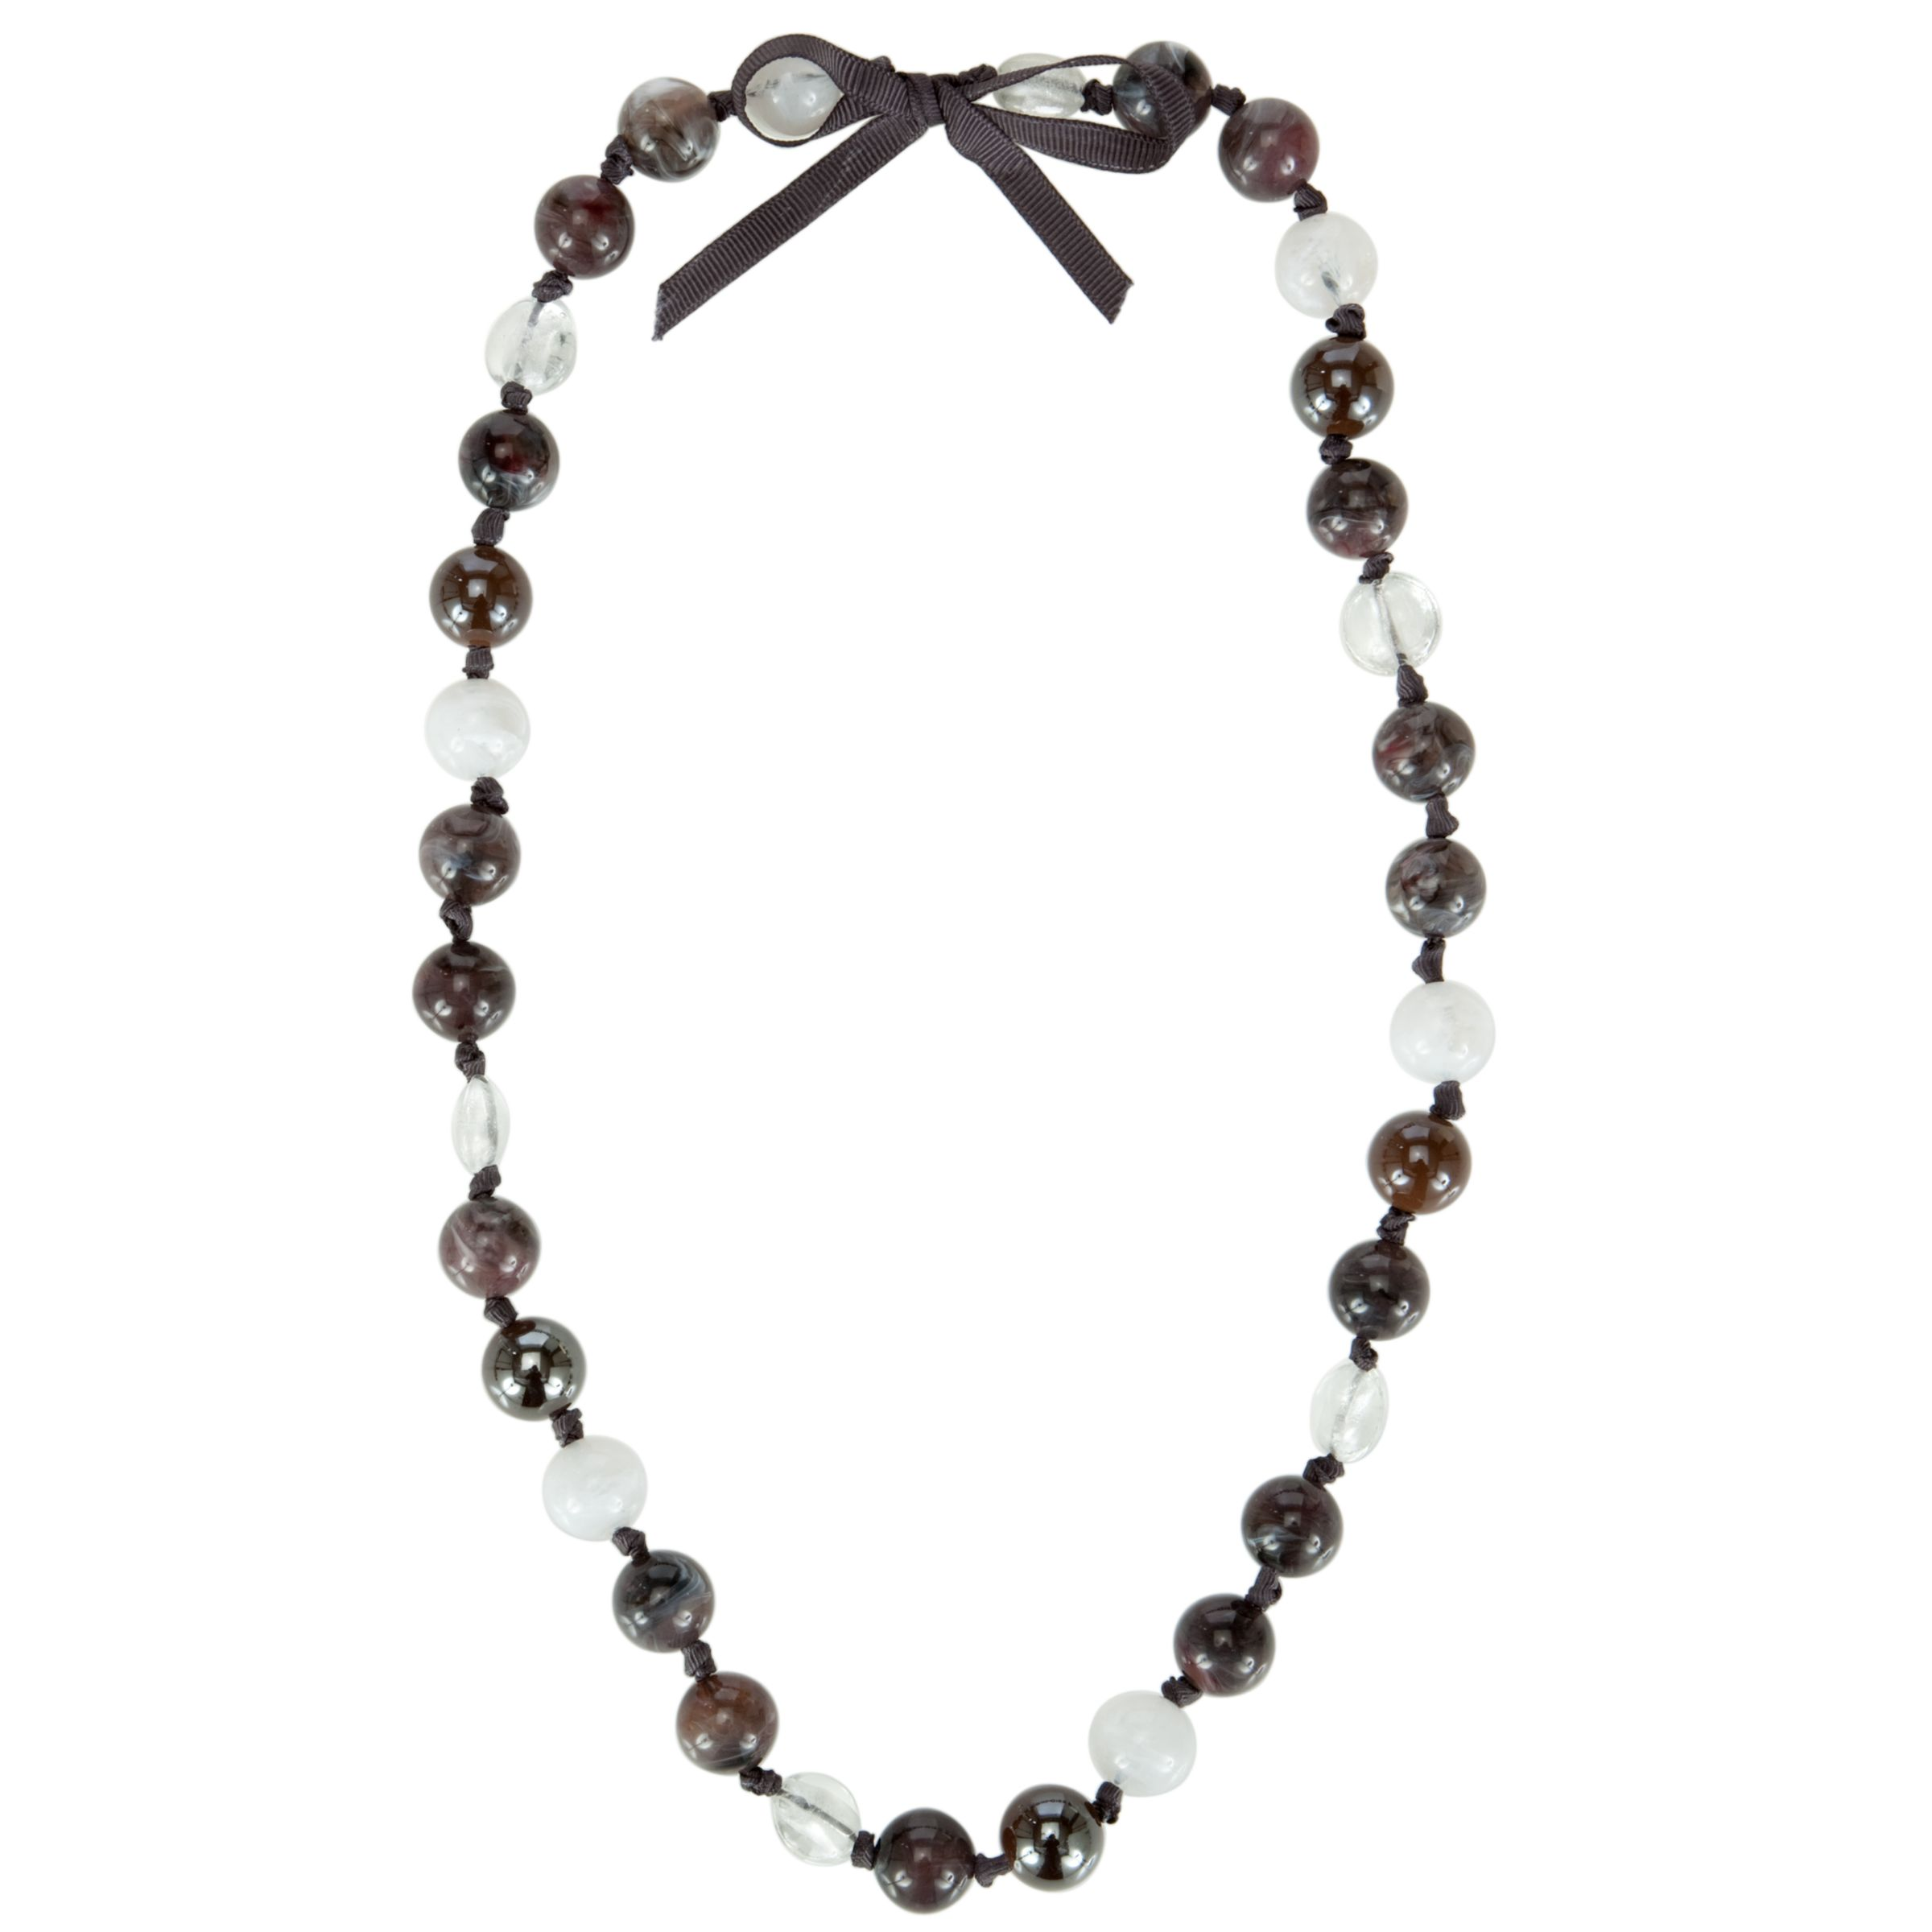 John Lewis Women Multicoloured Bead and Gross Grain Bow Necklace, Black/White